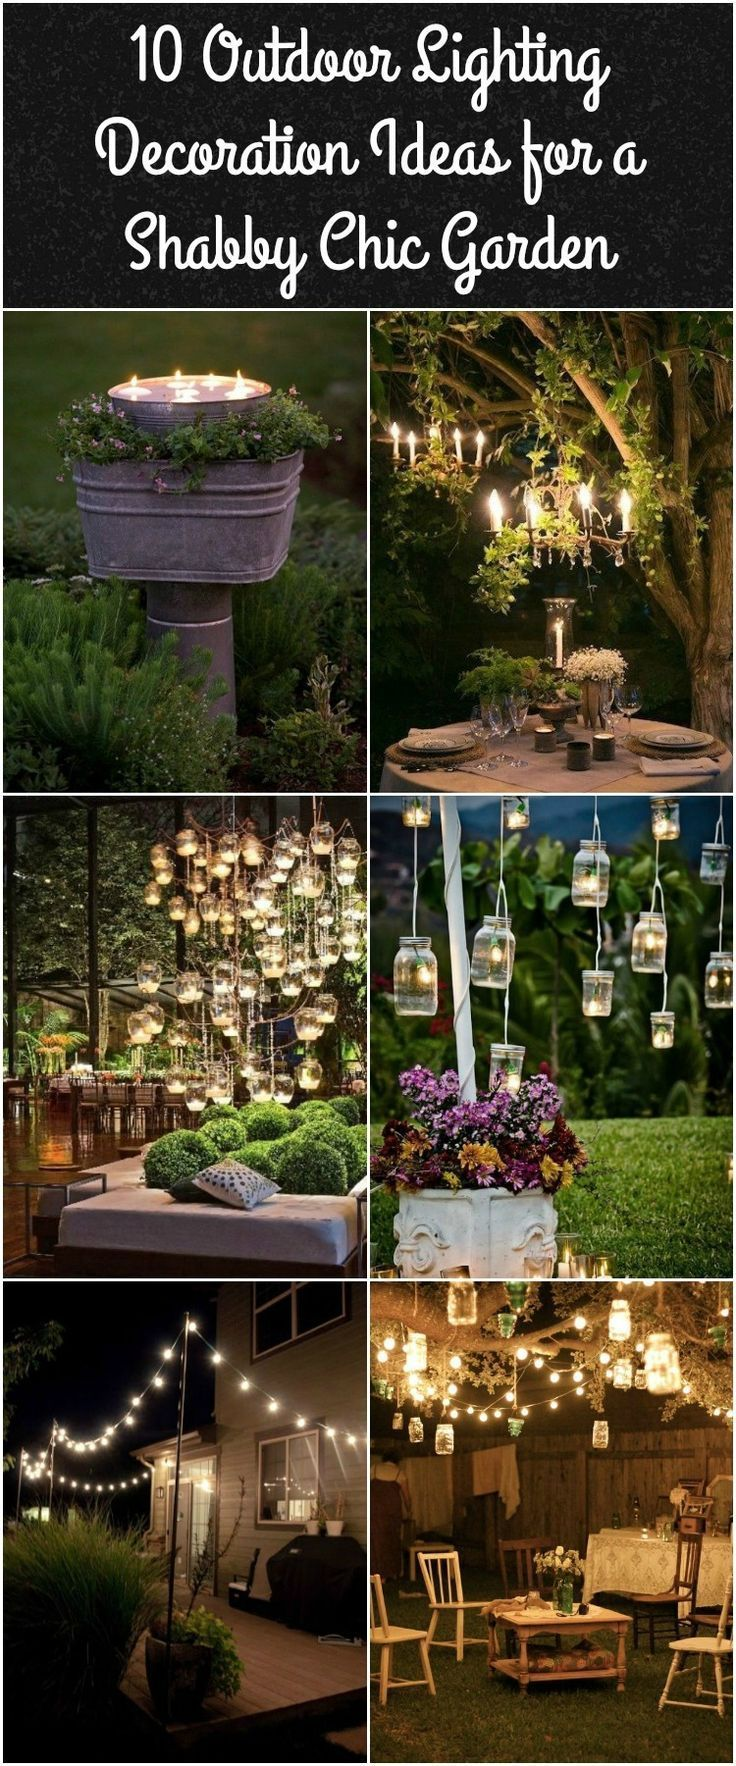 The shabby chic decorating style and outdoor lighting ideas were ...